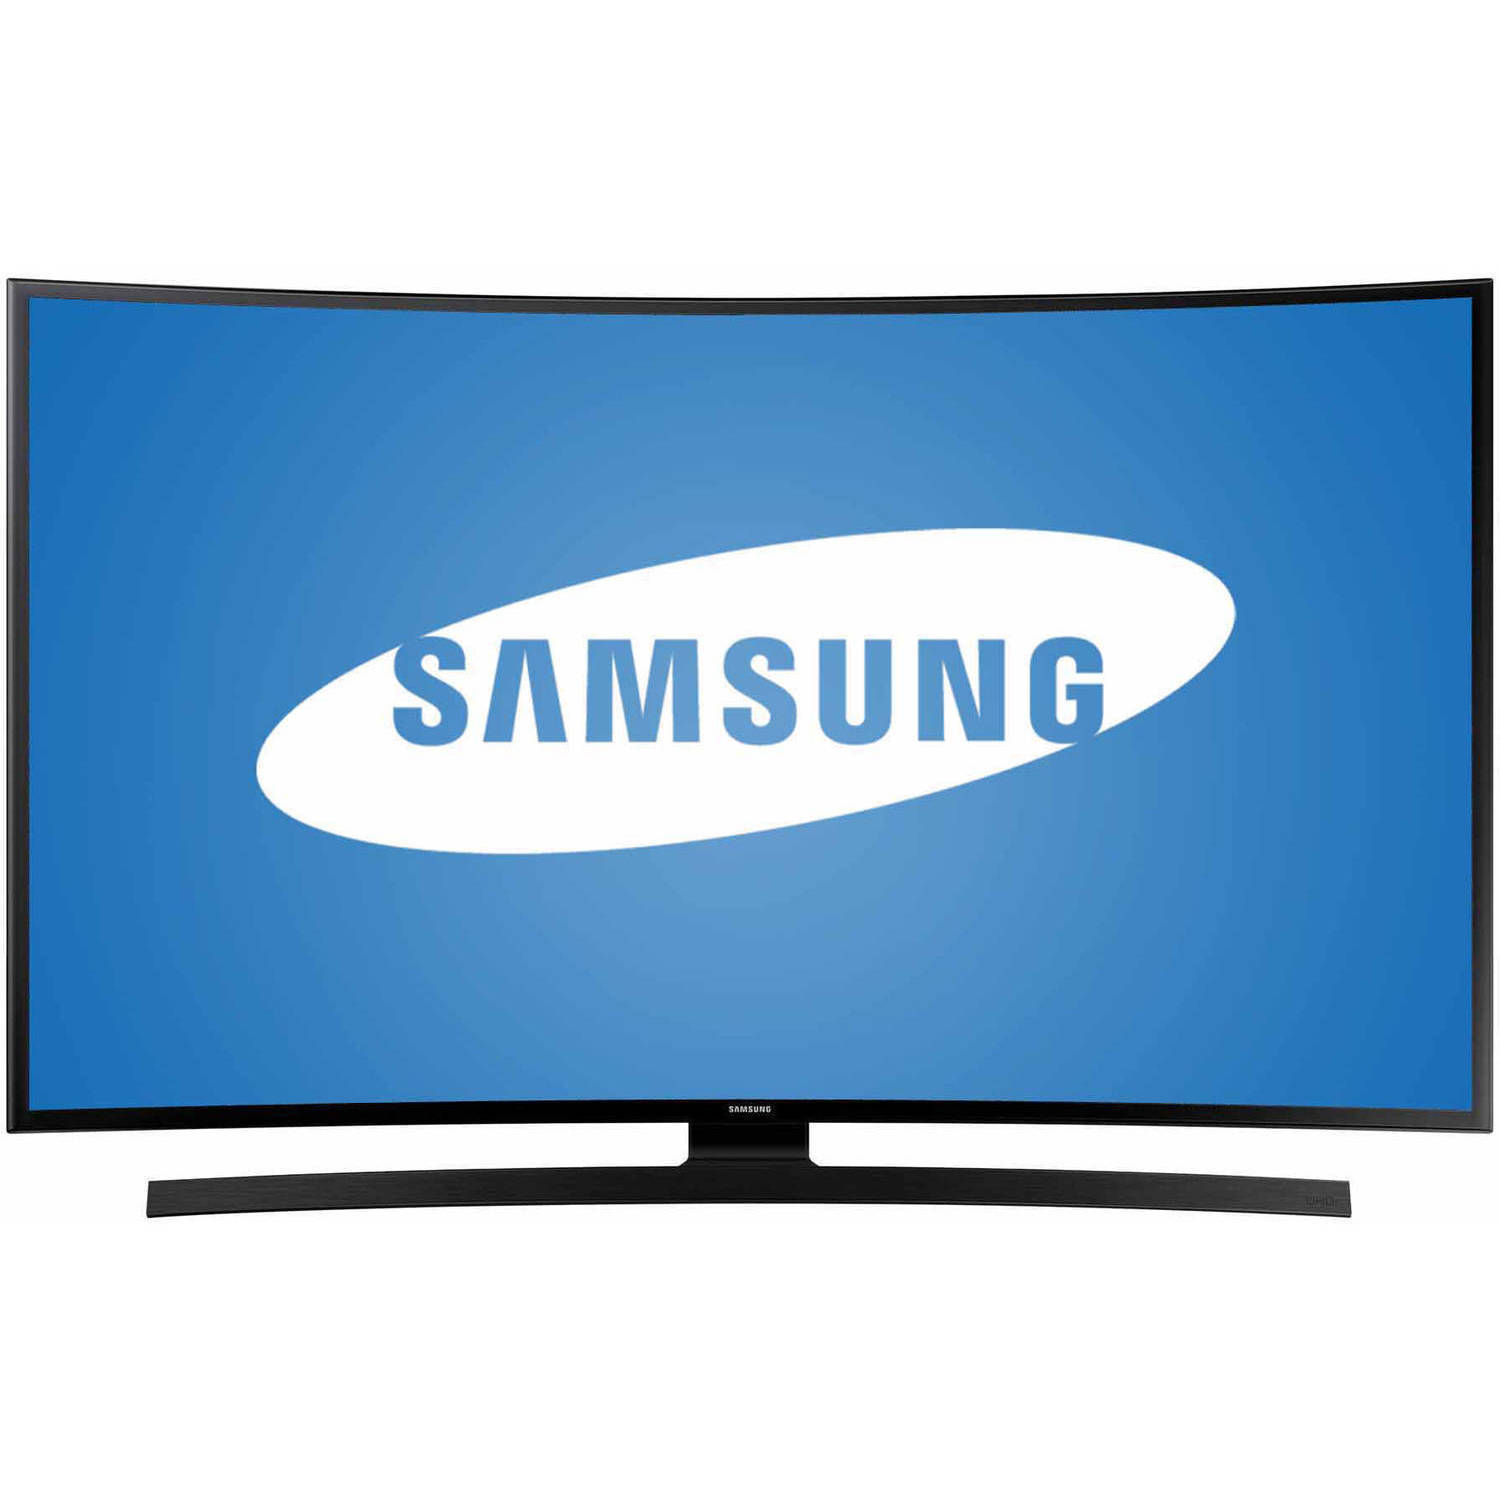 "Refurbished Samsung UN55JU6700 55"" Curved 4K Ultra HD 2160p 60Hz LED Smart HDTV (4K x 2K)"